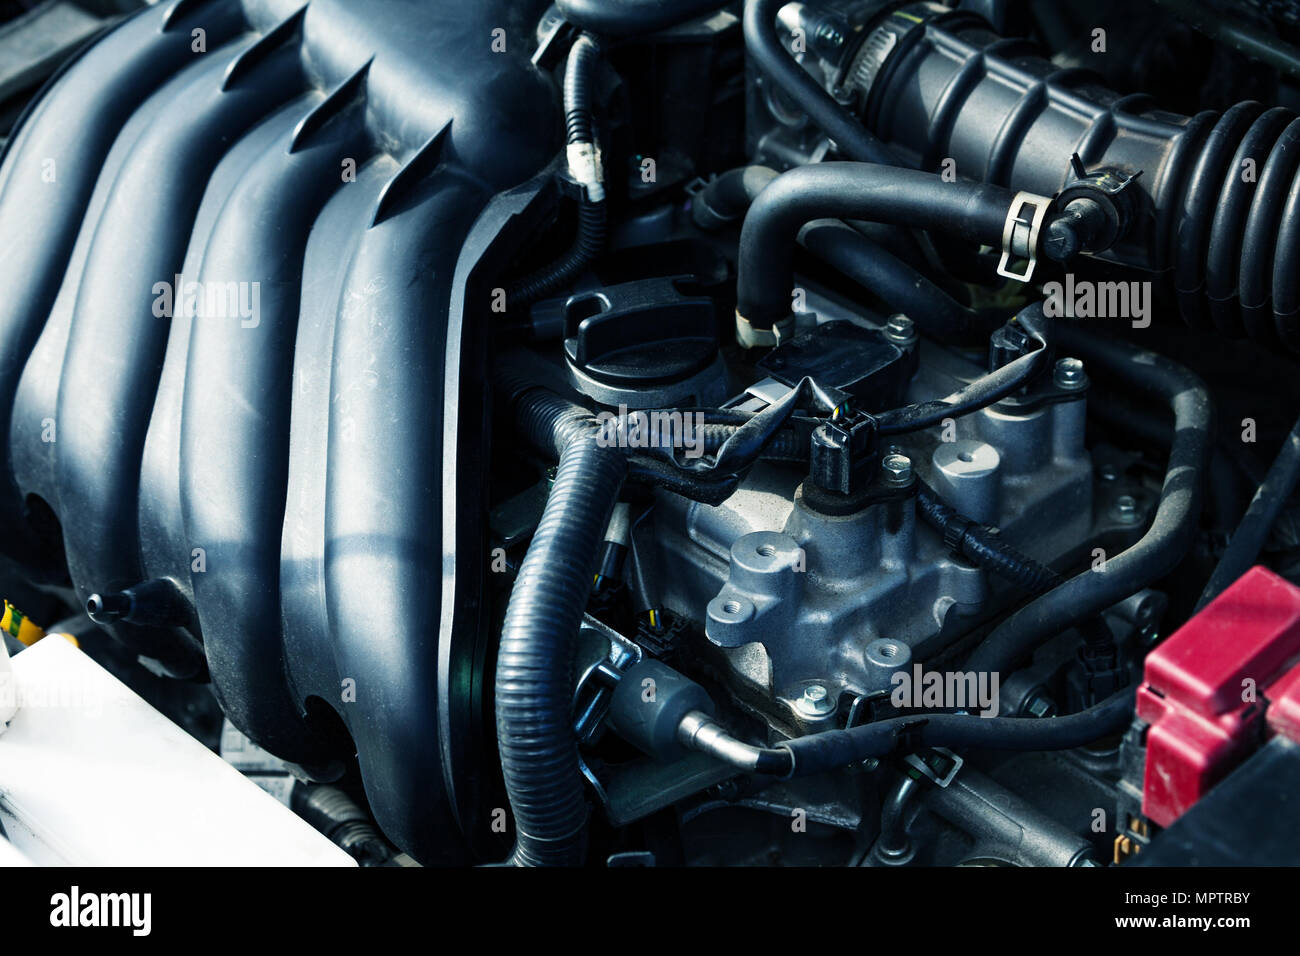 Close-up picture of automobile engine devices, manifold and hoses Stock Photo